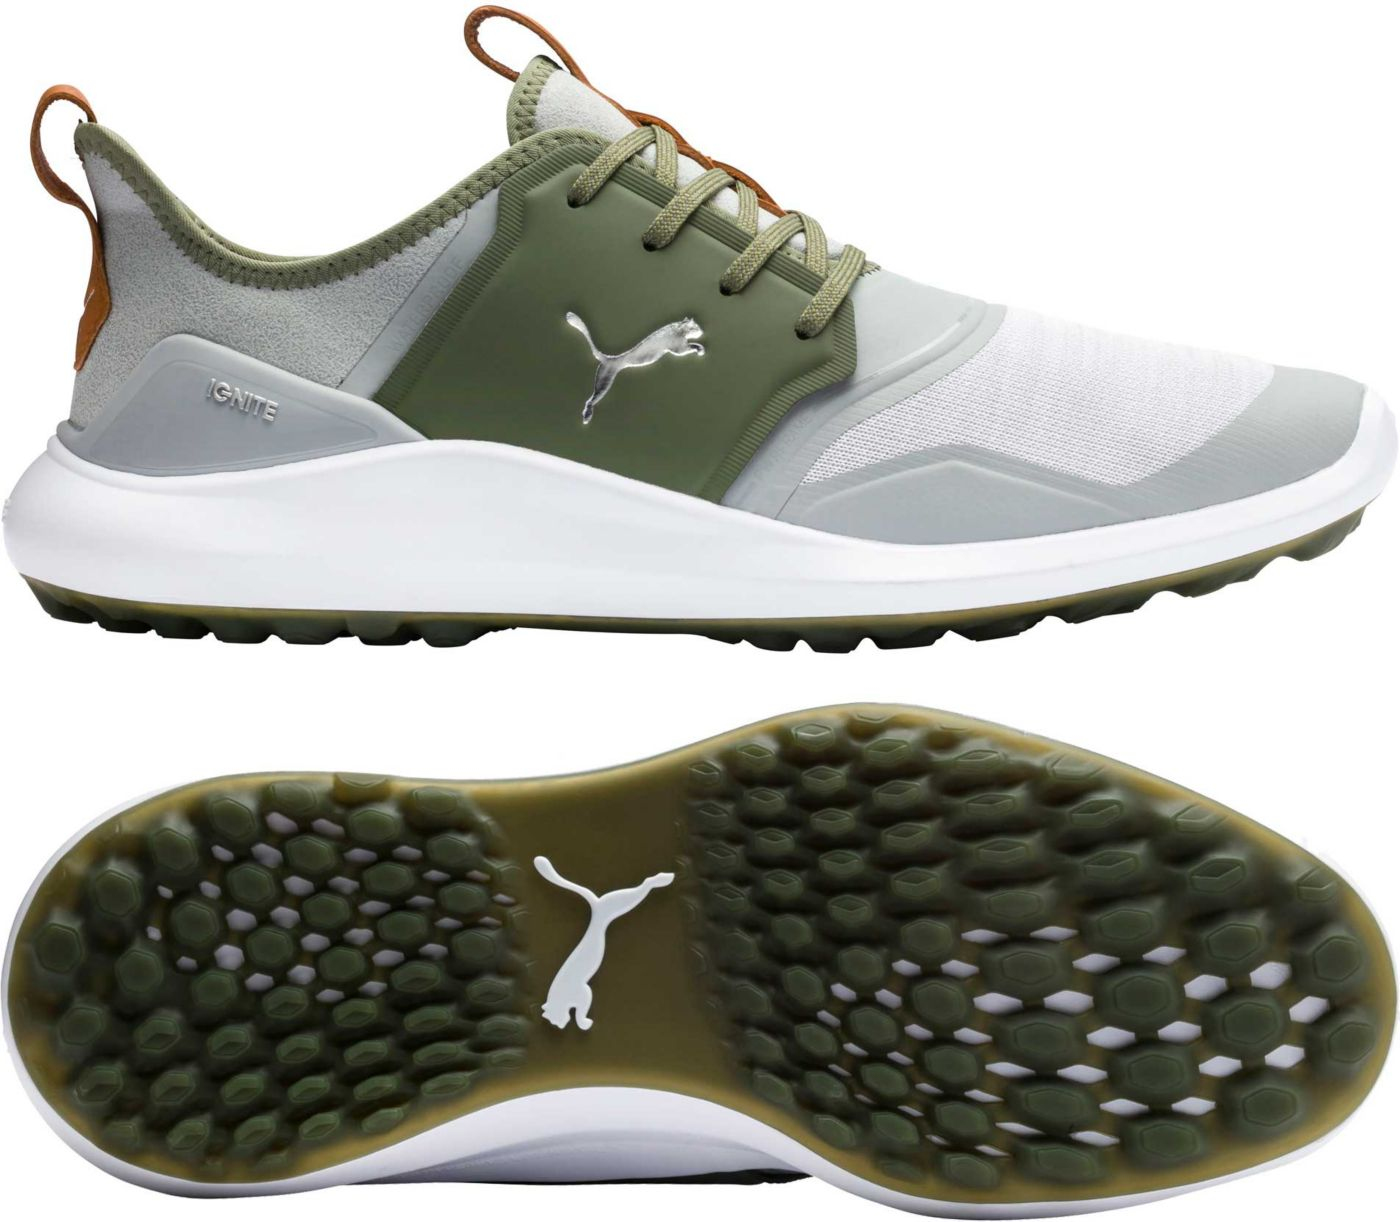 PUMA Men's IGNITE NXT Golf Shoes